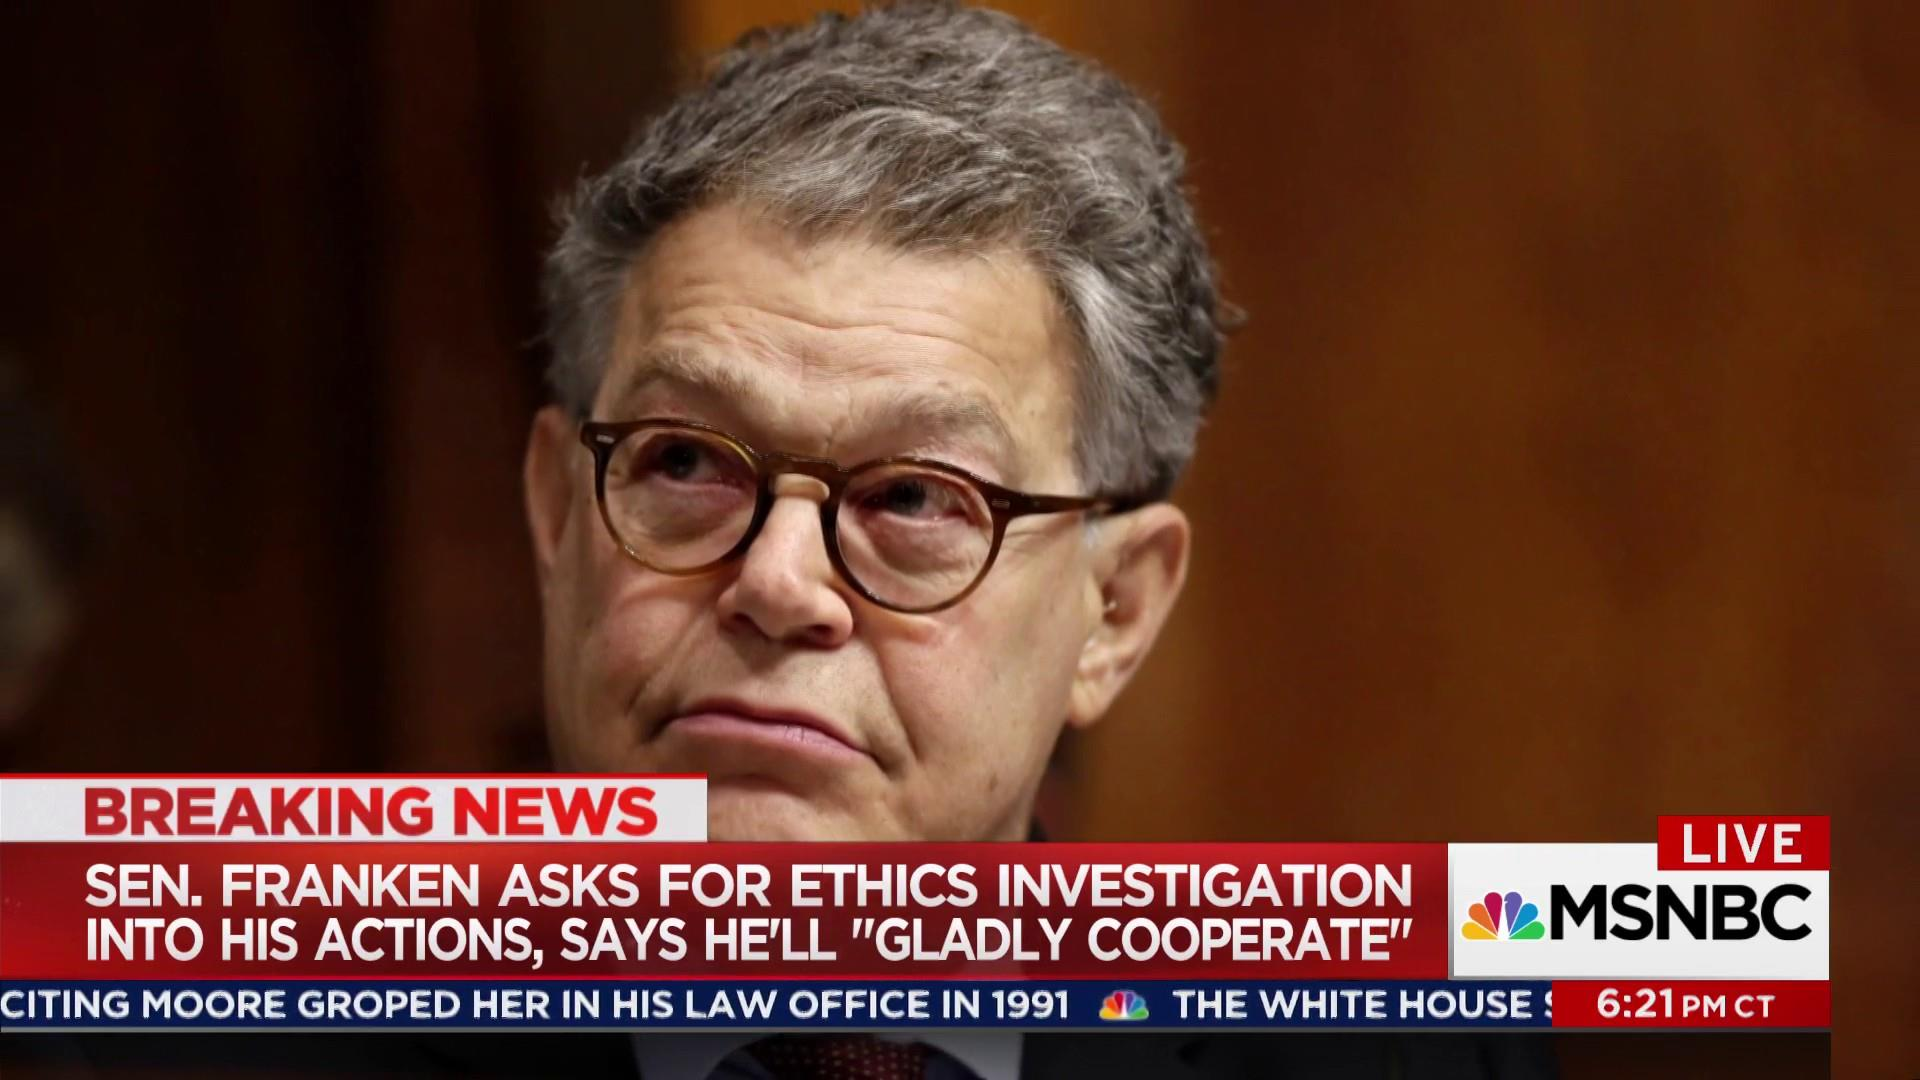 Bipartisan calls for ethics investigation...